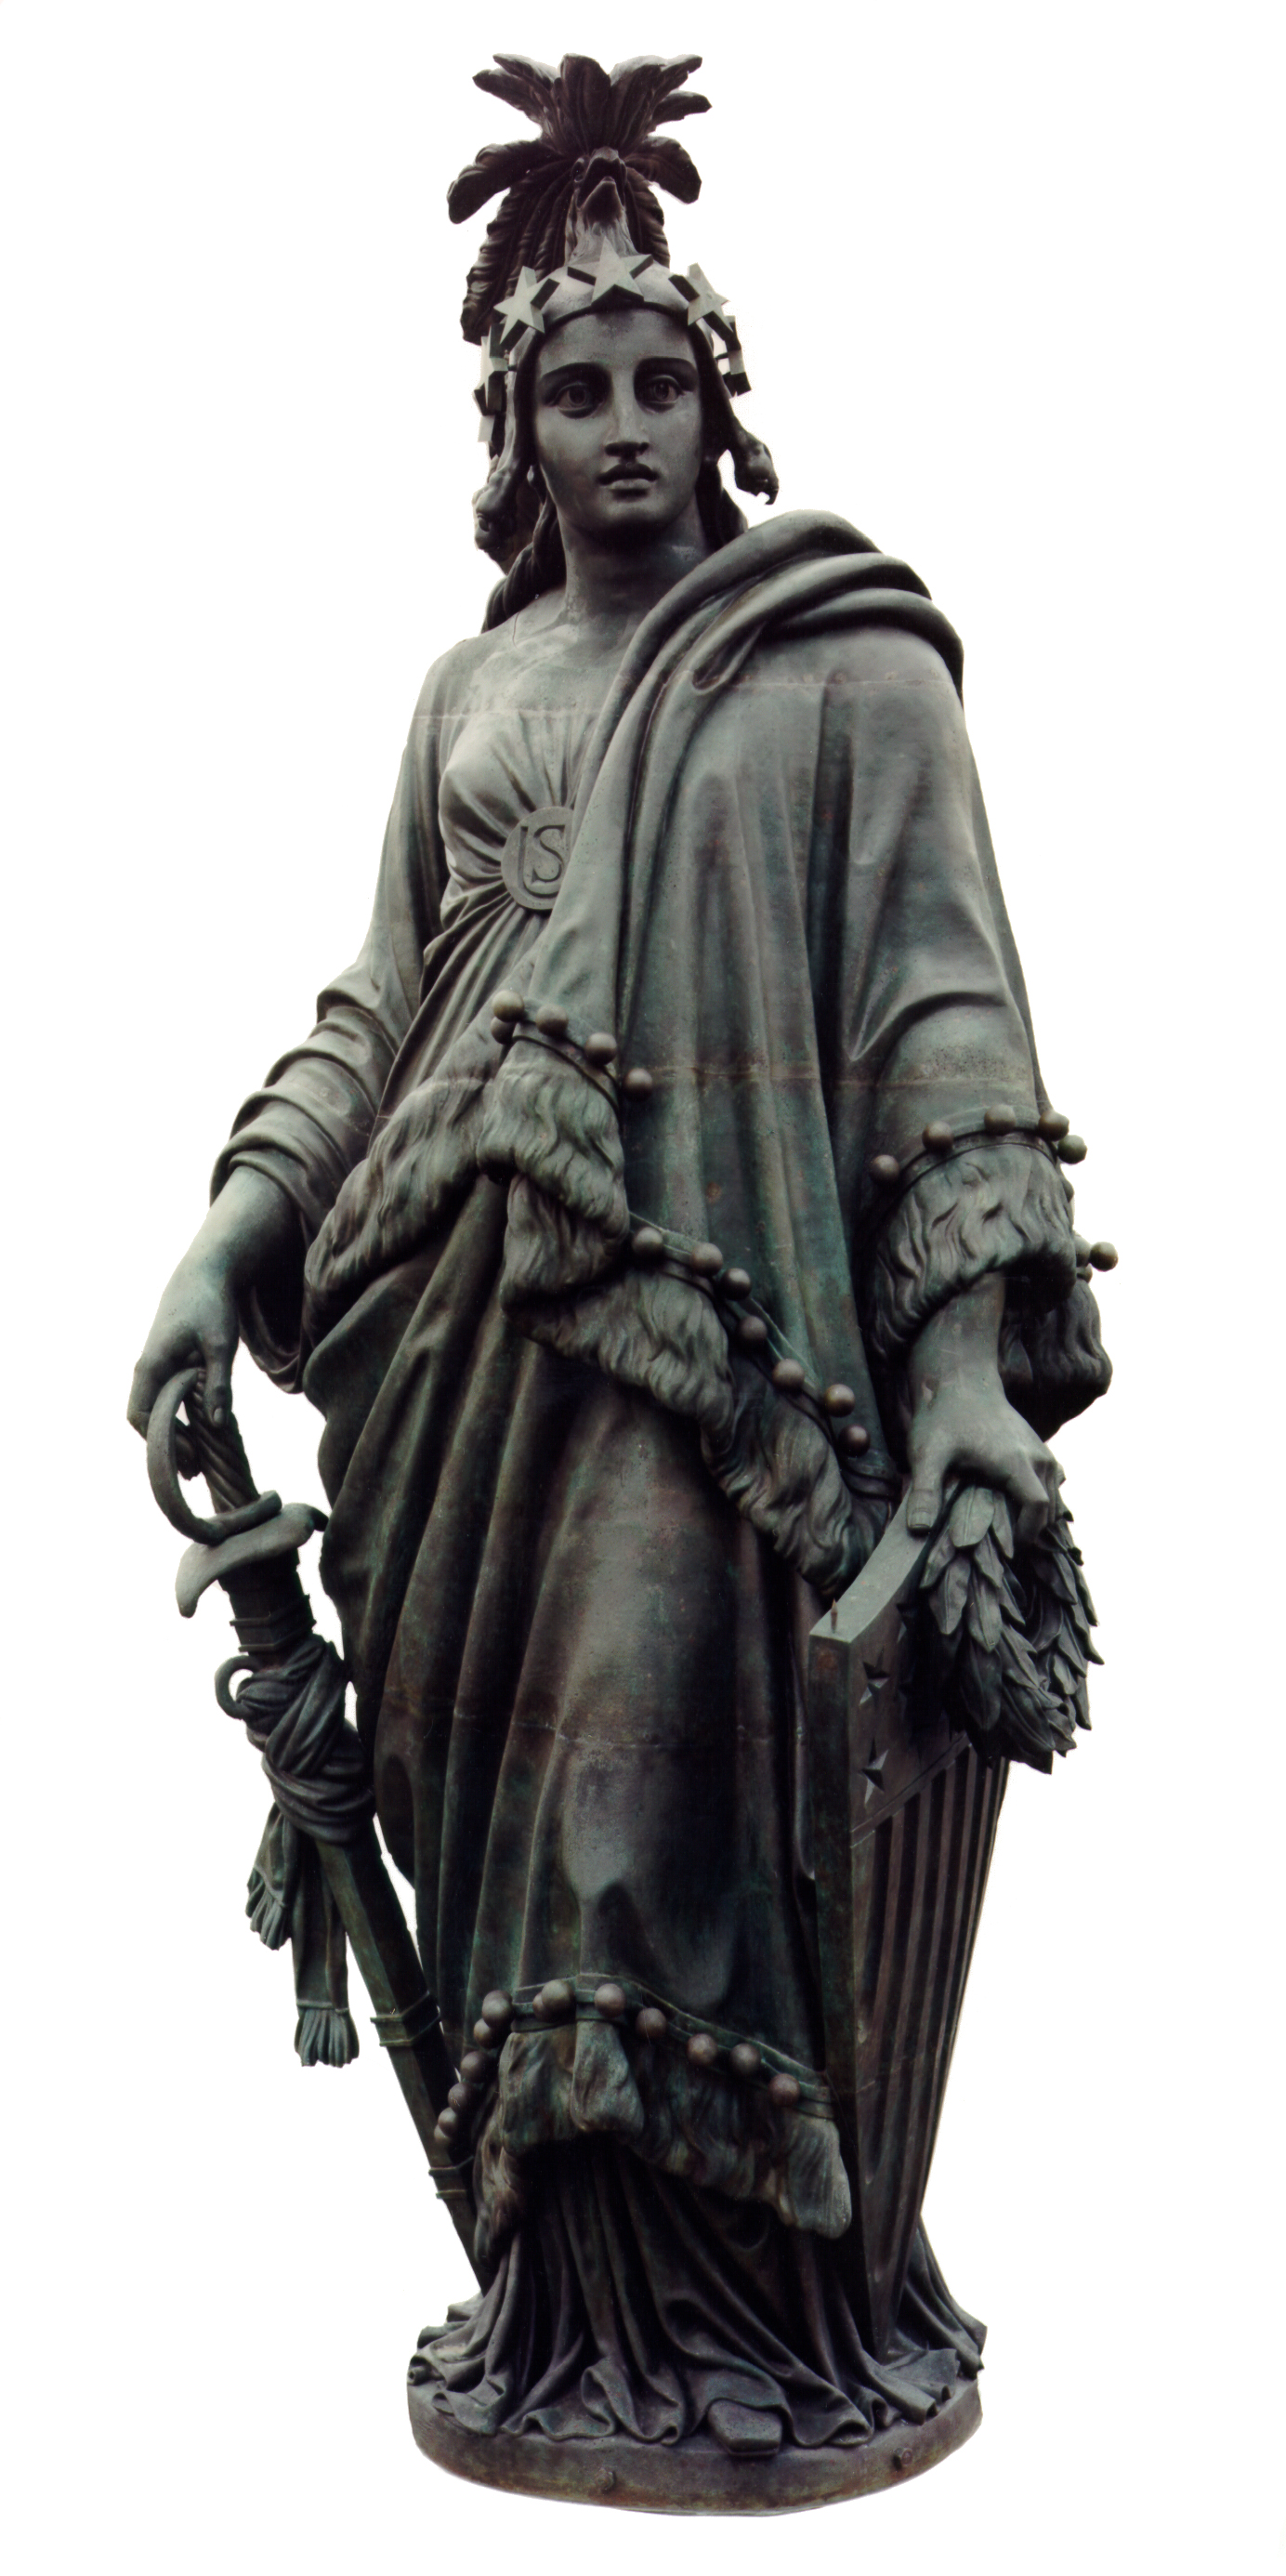 Statue of Freedom. Photo taken by The Architect of the Capitol, June 9, 2004.